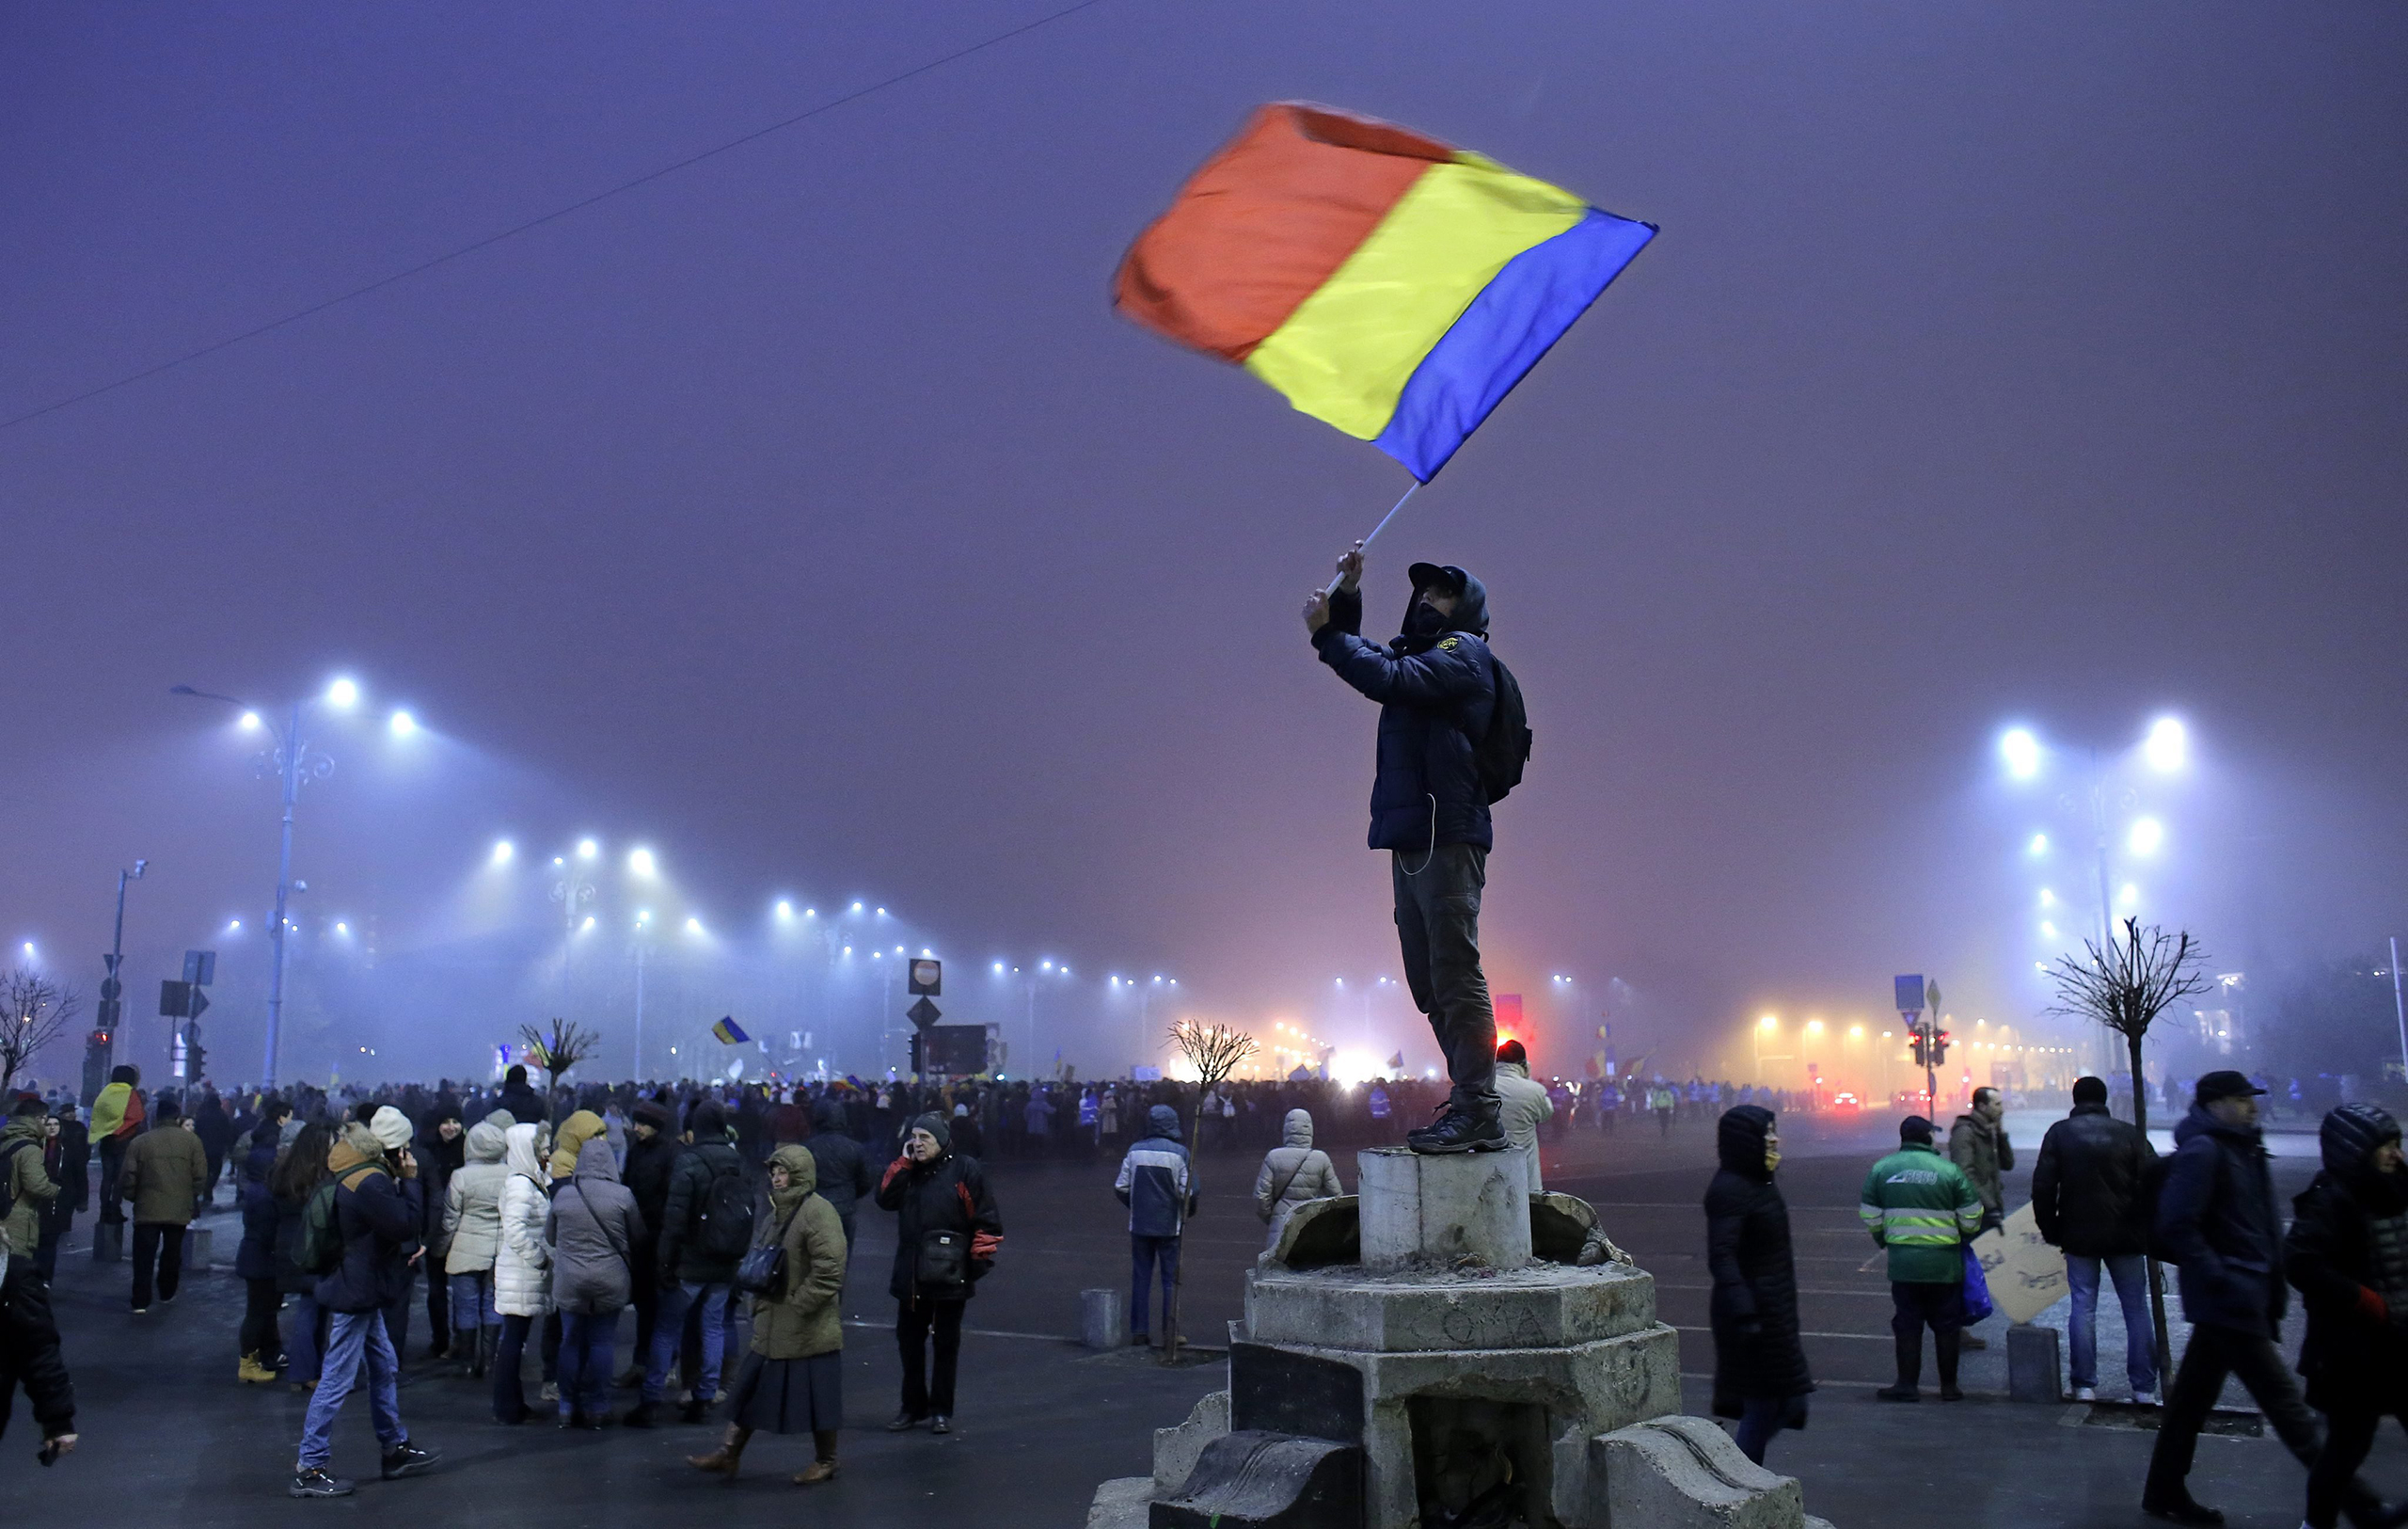 A young man who climbed atop a pedestal waves a Romanian national flag during an antigovernment protest in Bucharest on Feb. 6, 2017.